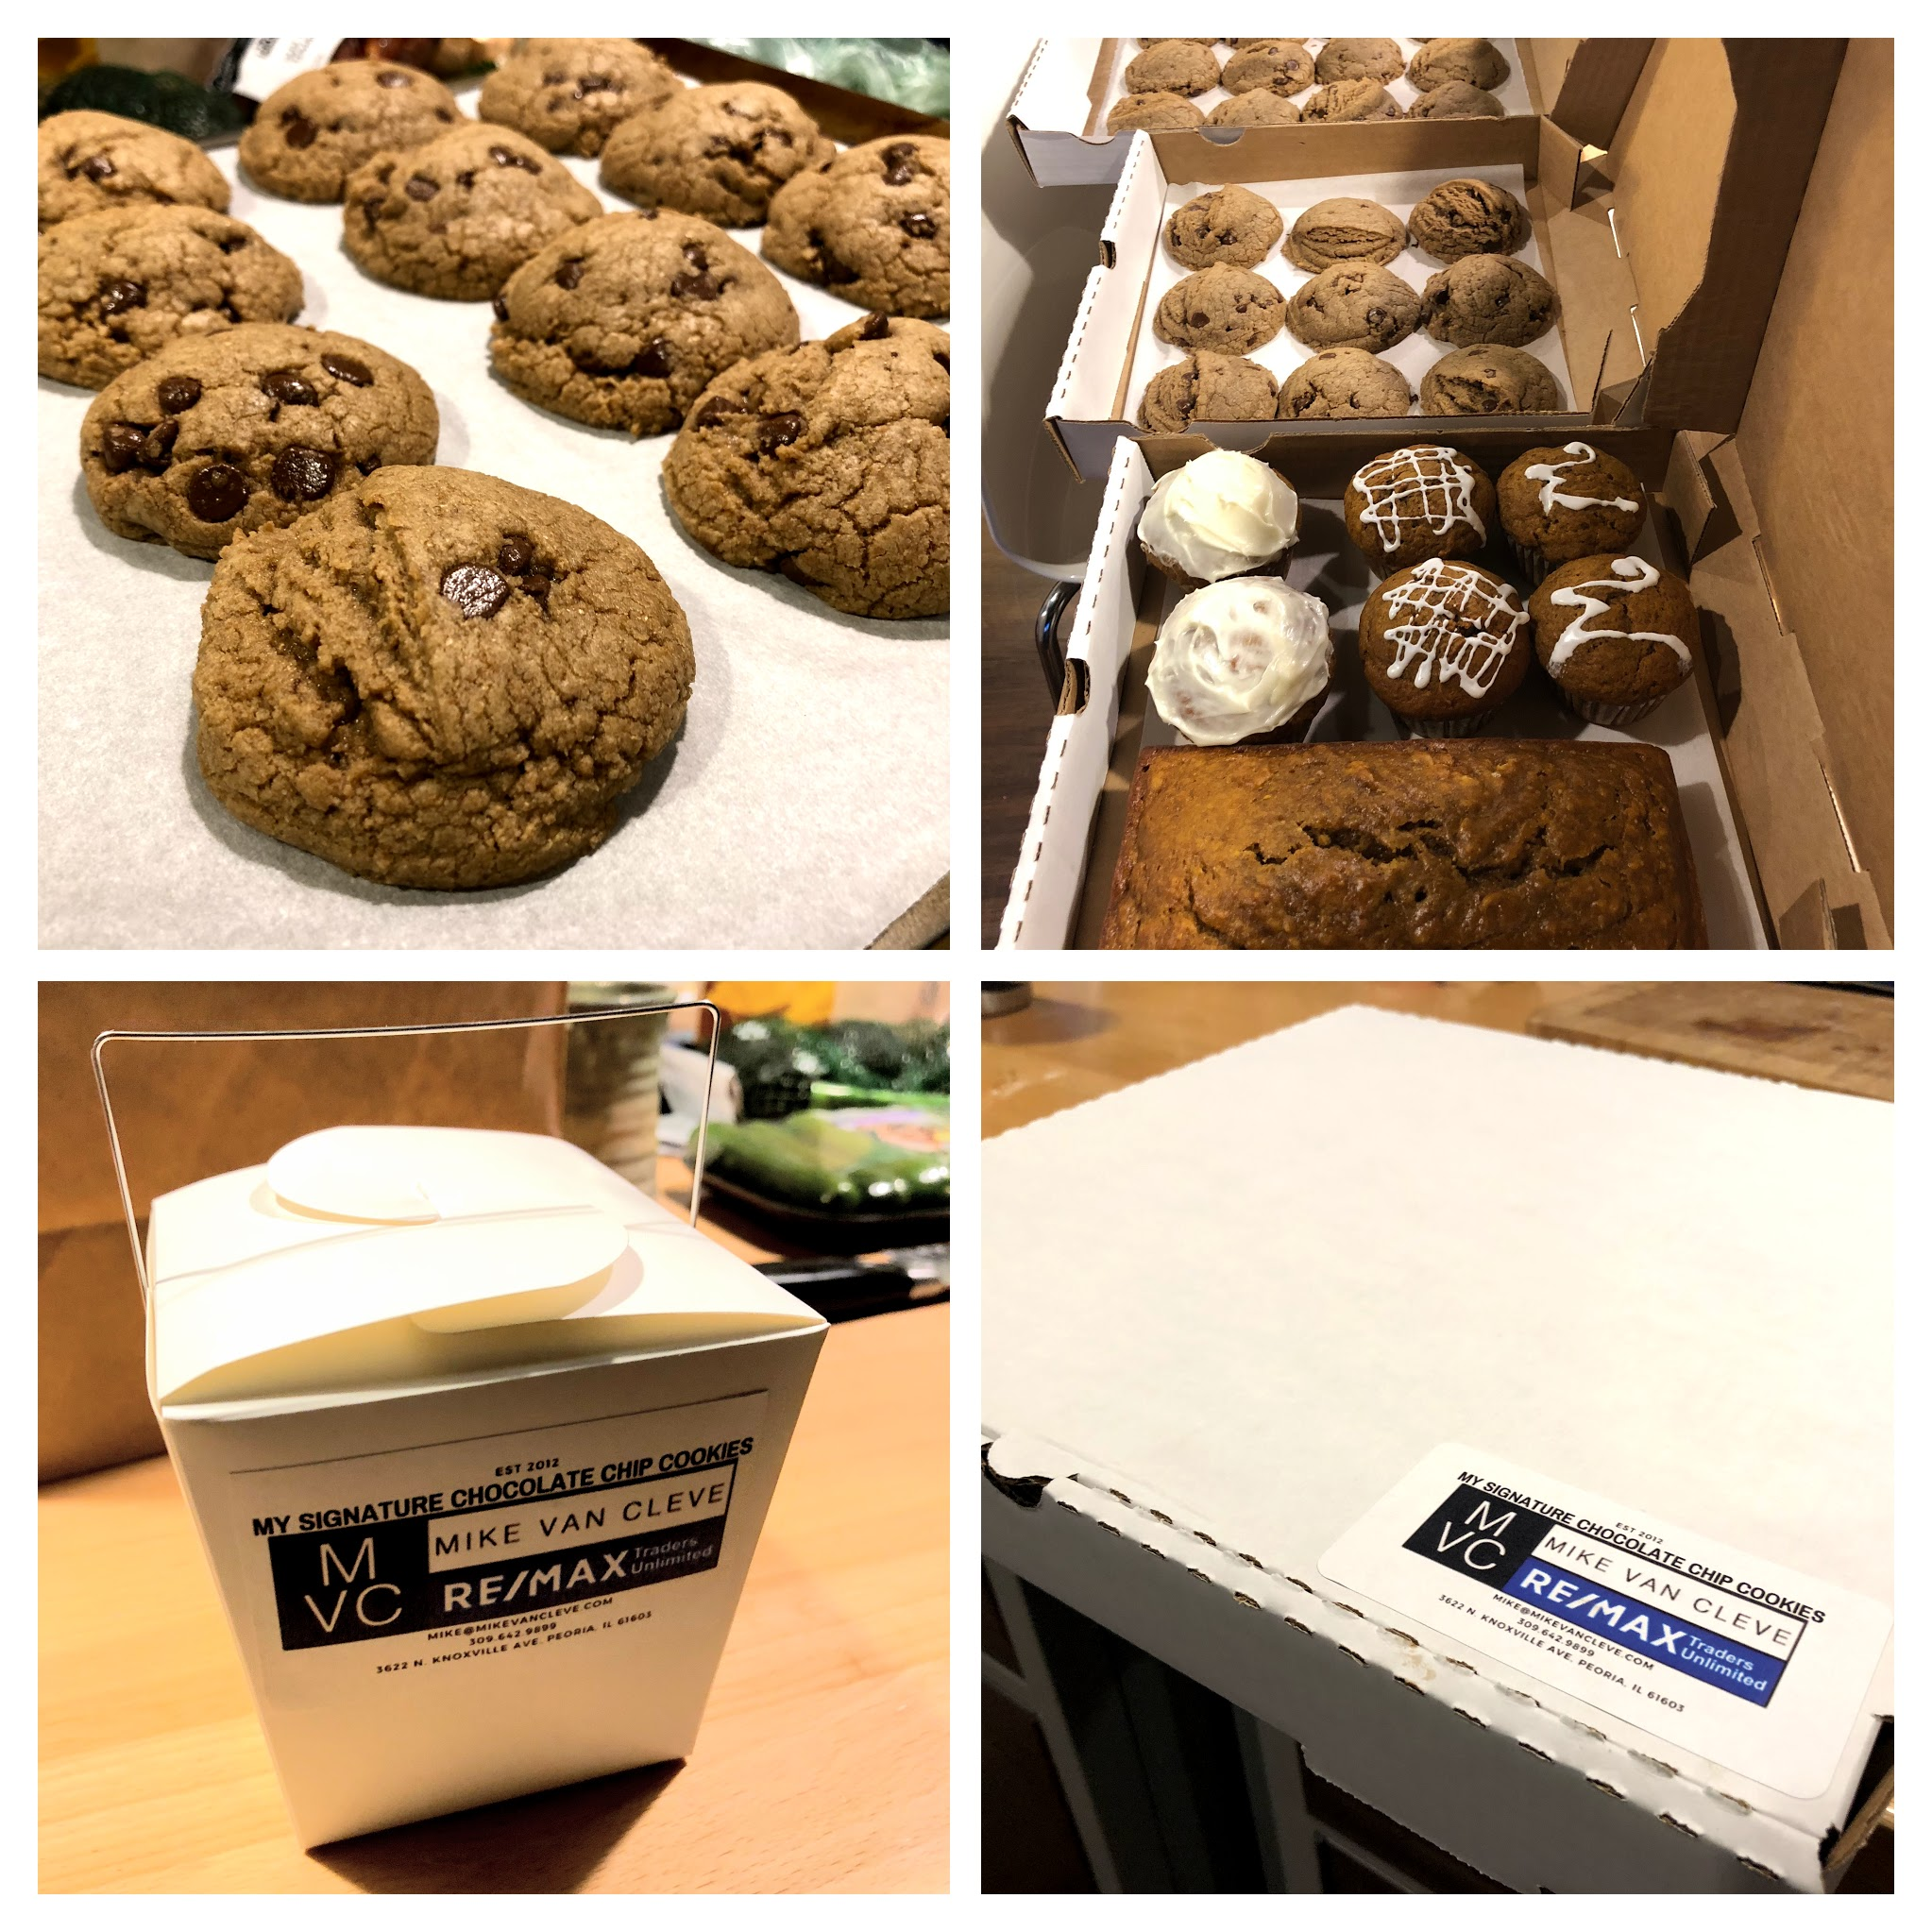 Mike is an avid baker and makes his Signature Chocolate Chip Cookies for clients, friends, and family.